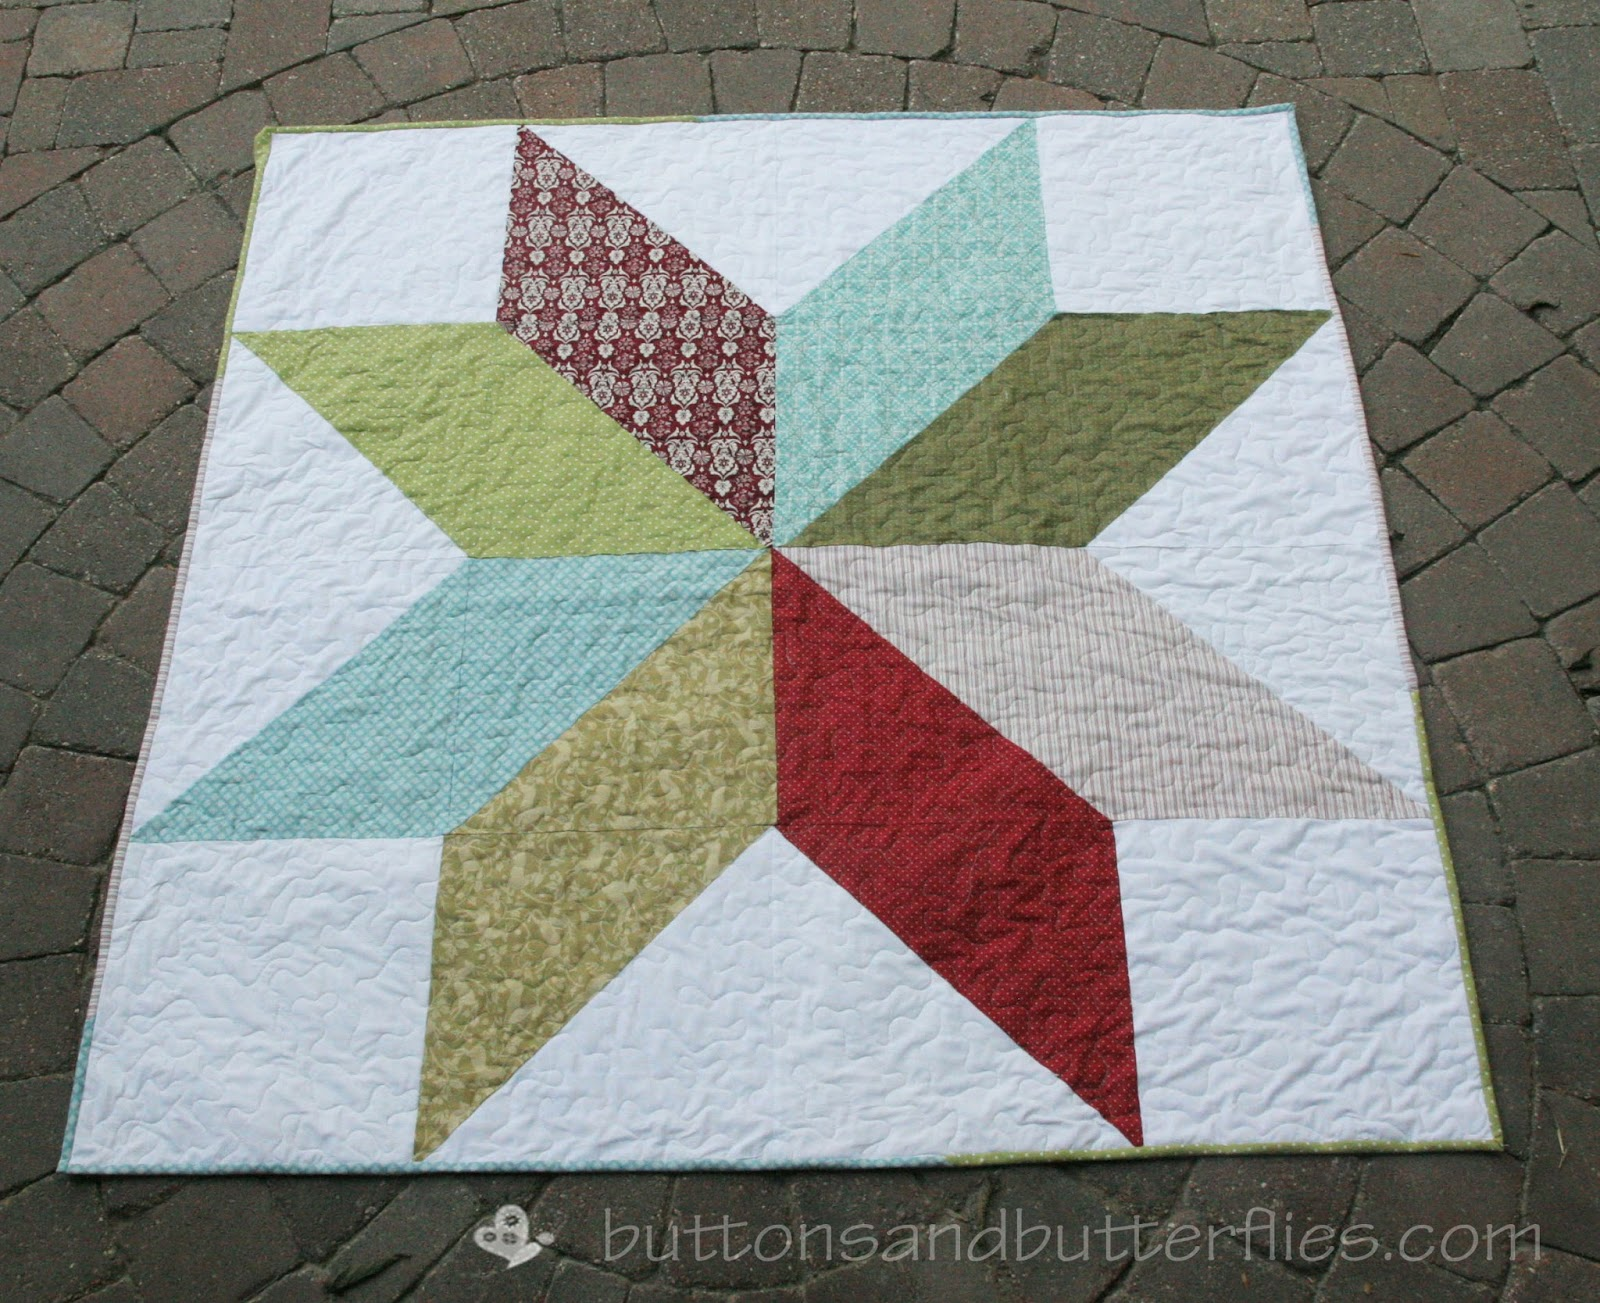 Buttons and butterflies christmas star quilt